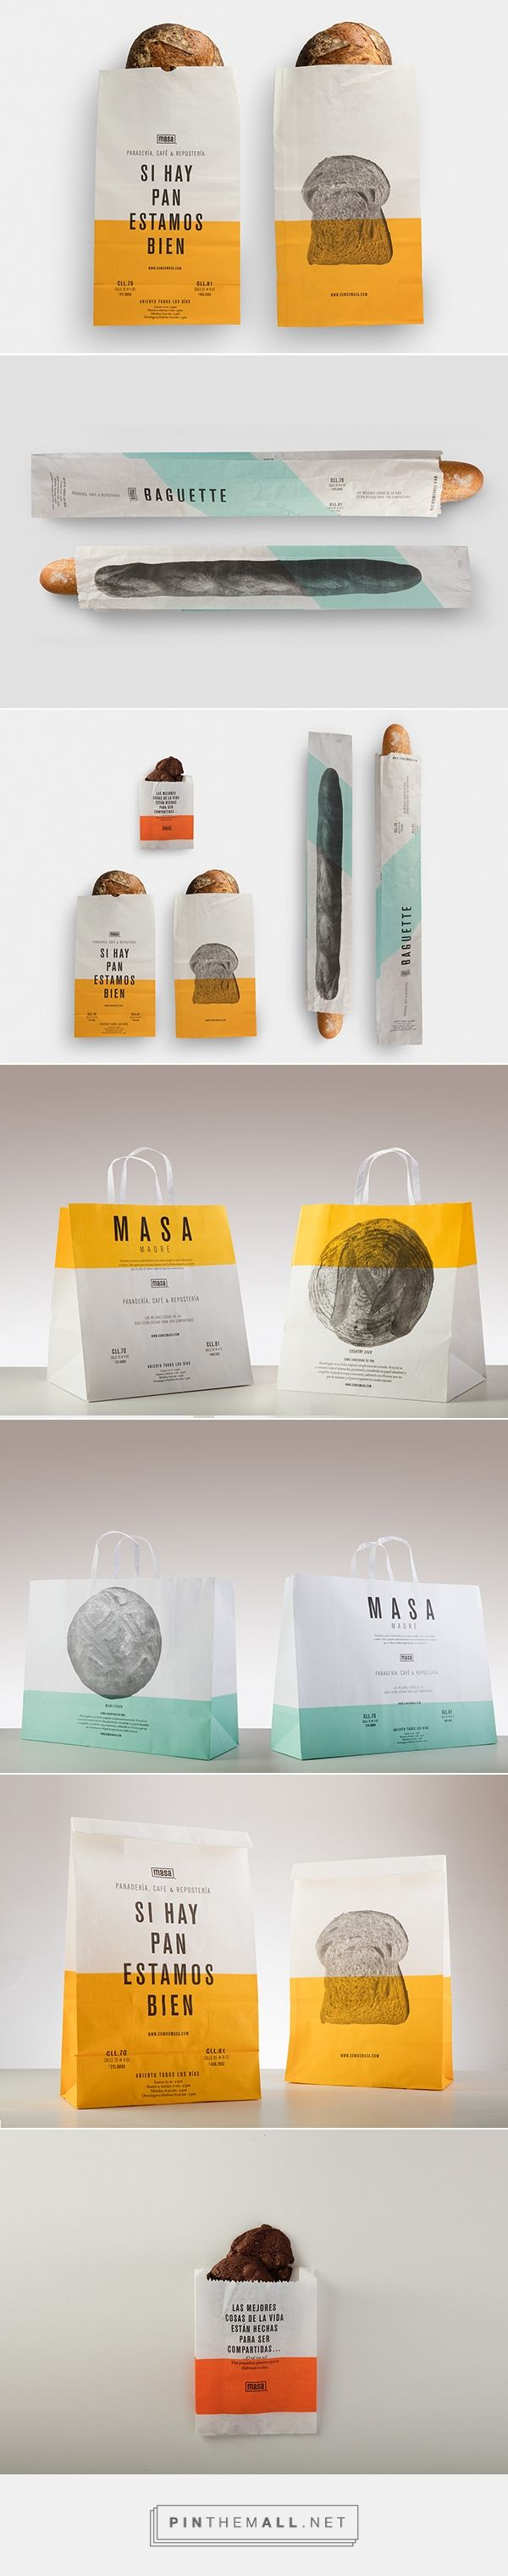 Masa - take away bags by Siegenthaler &Co                                                                                                                                                      Más